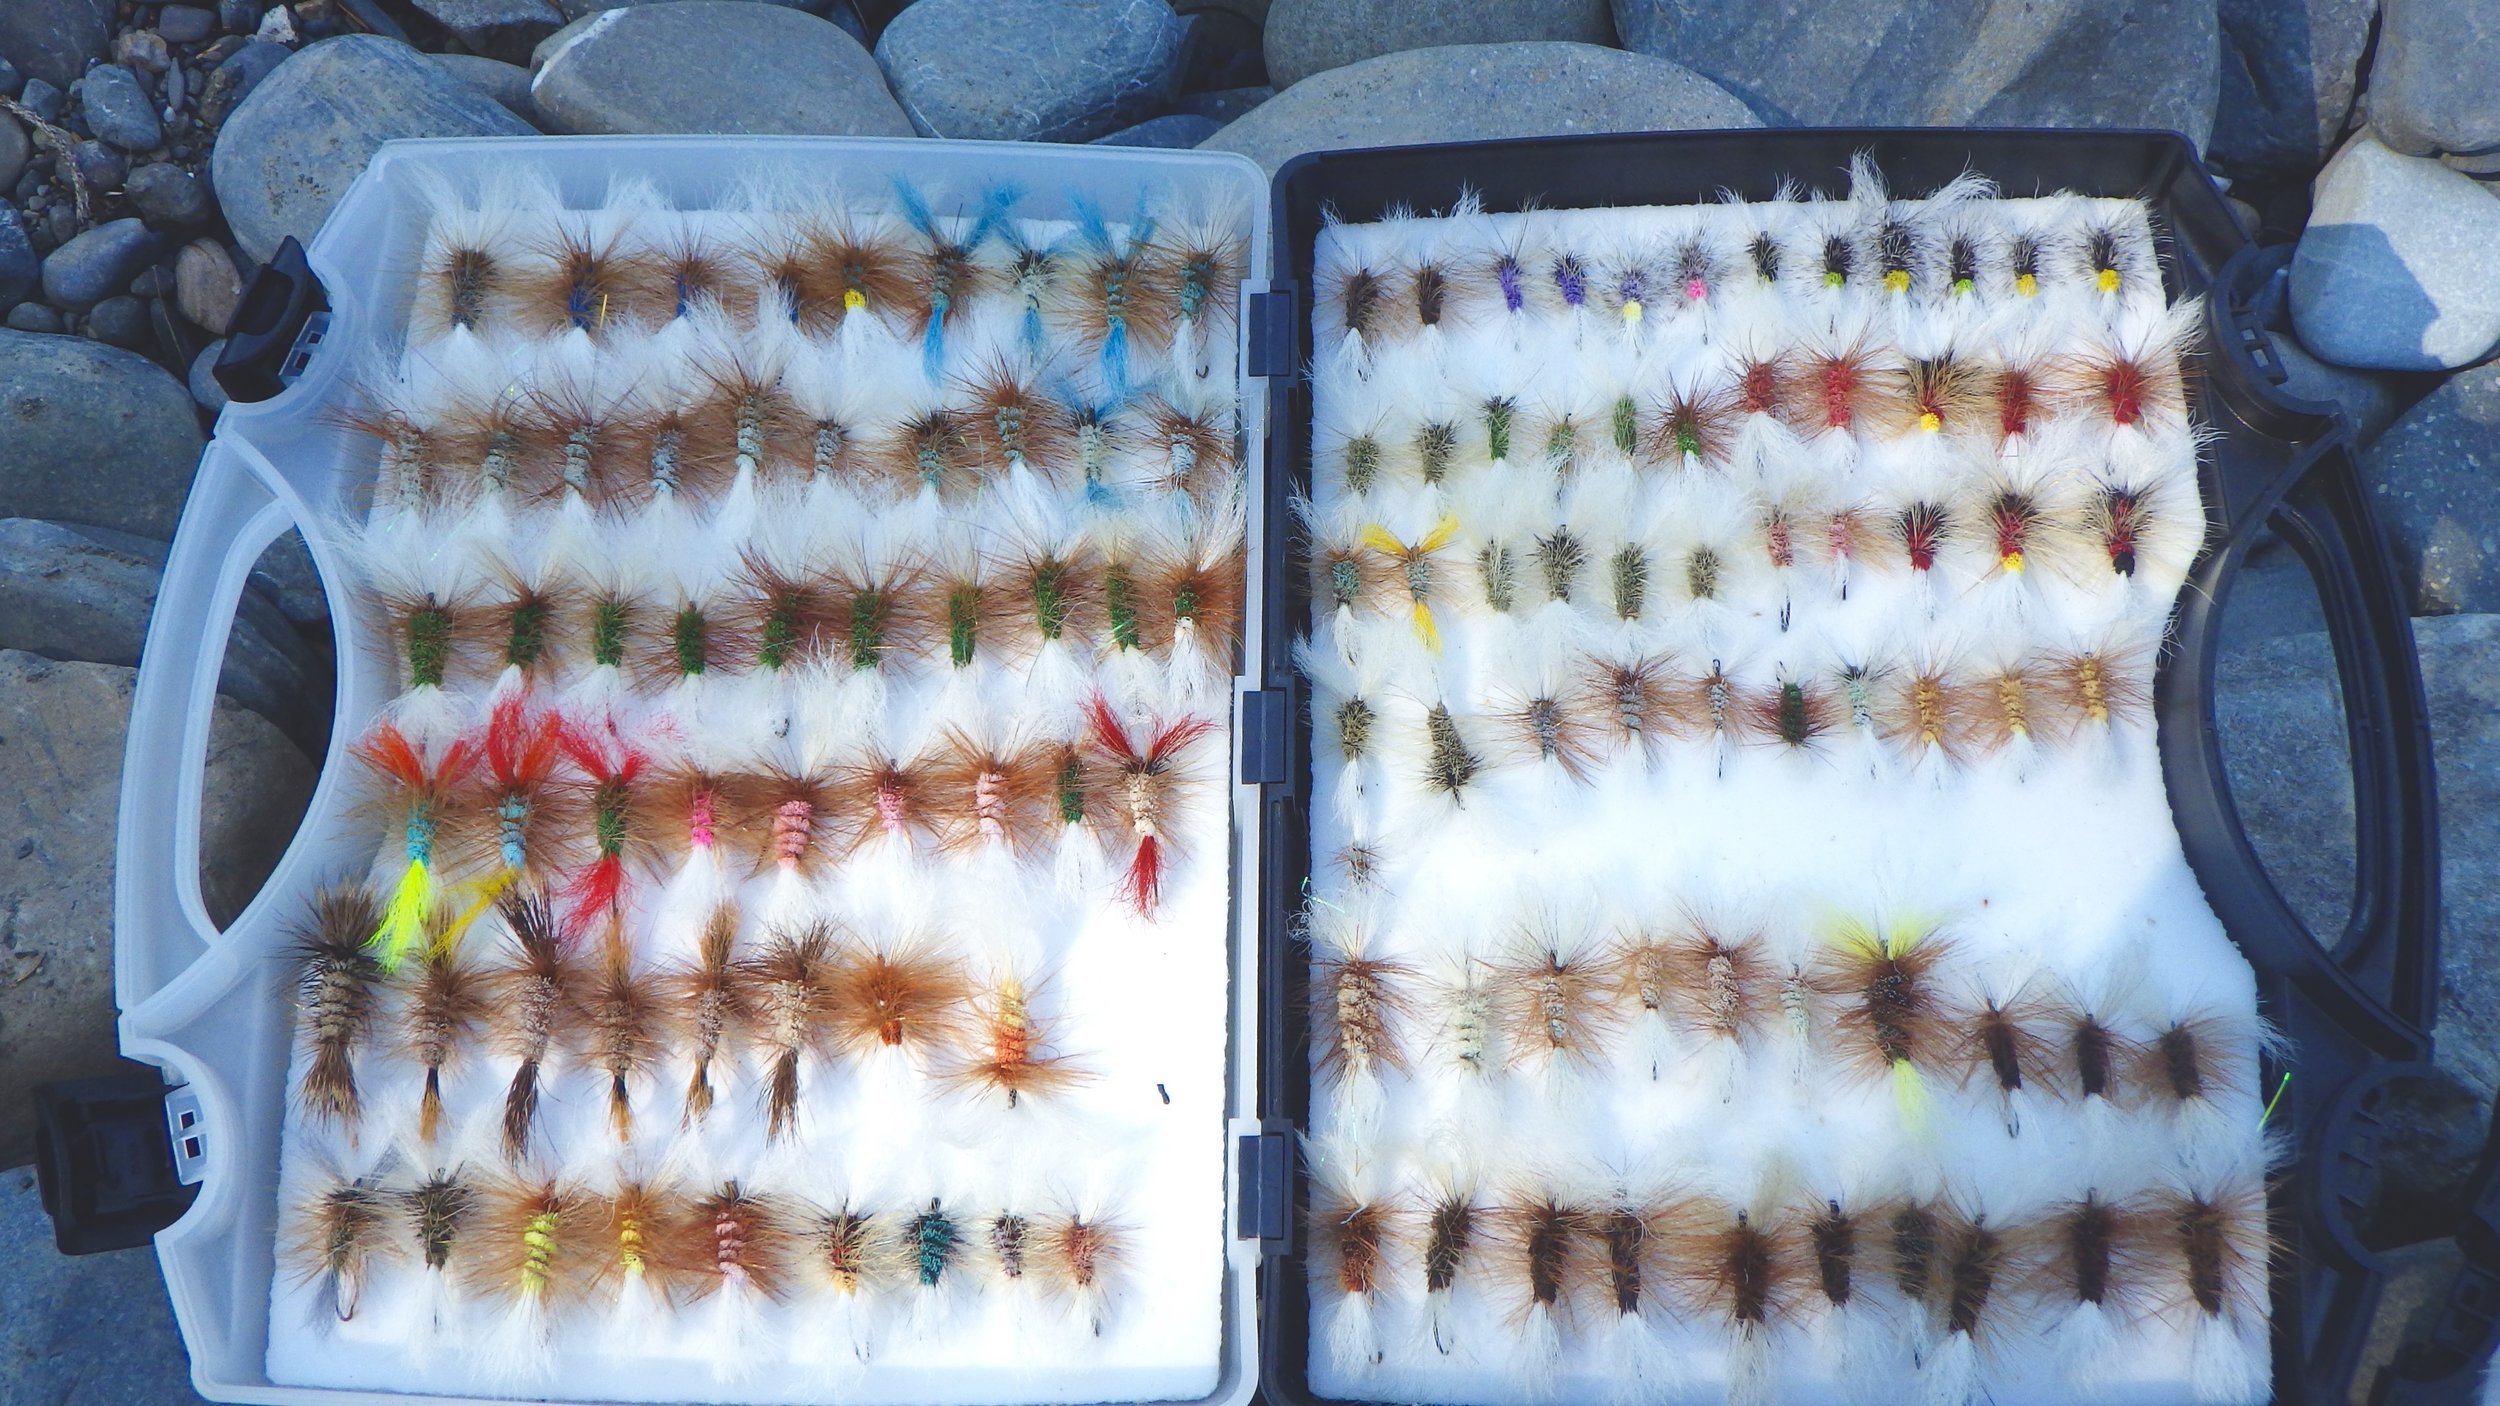 Dry fly anyone?